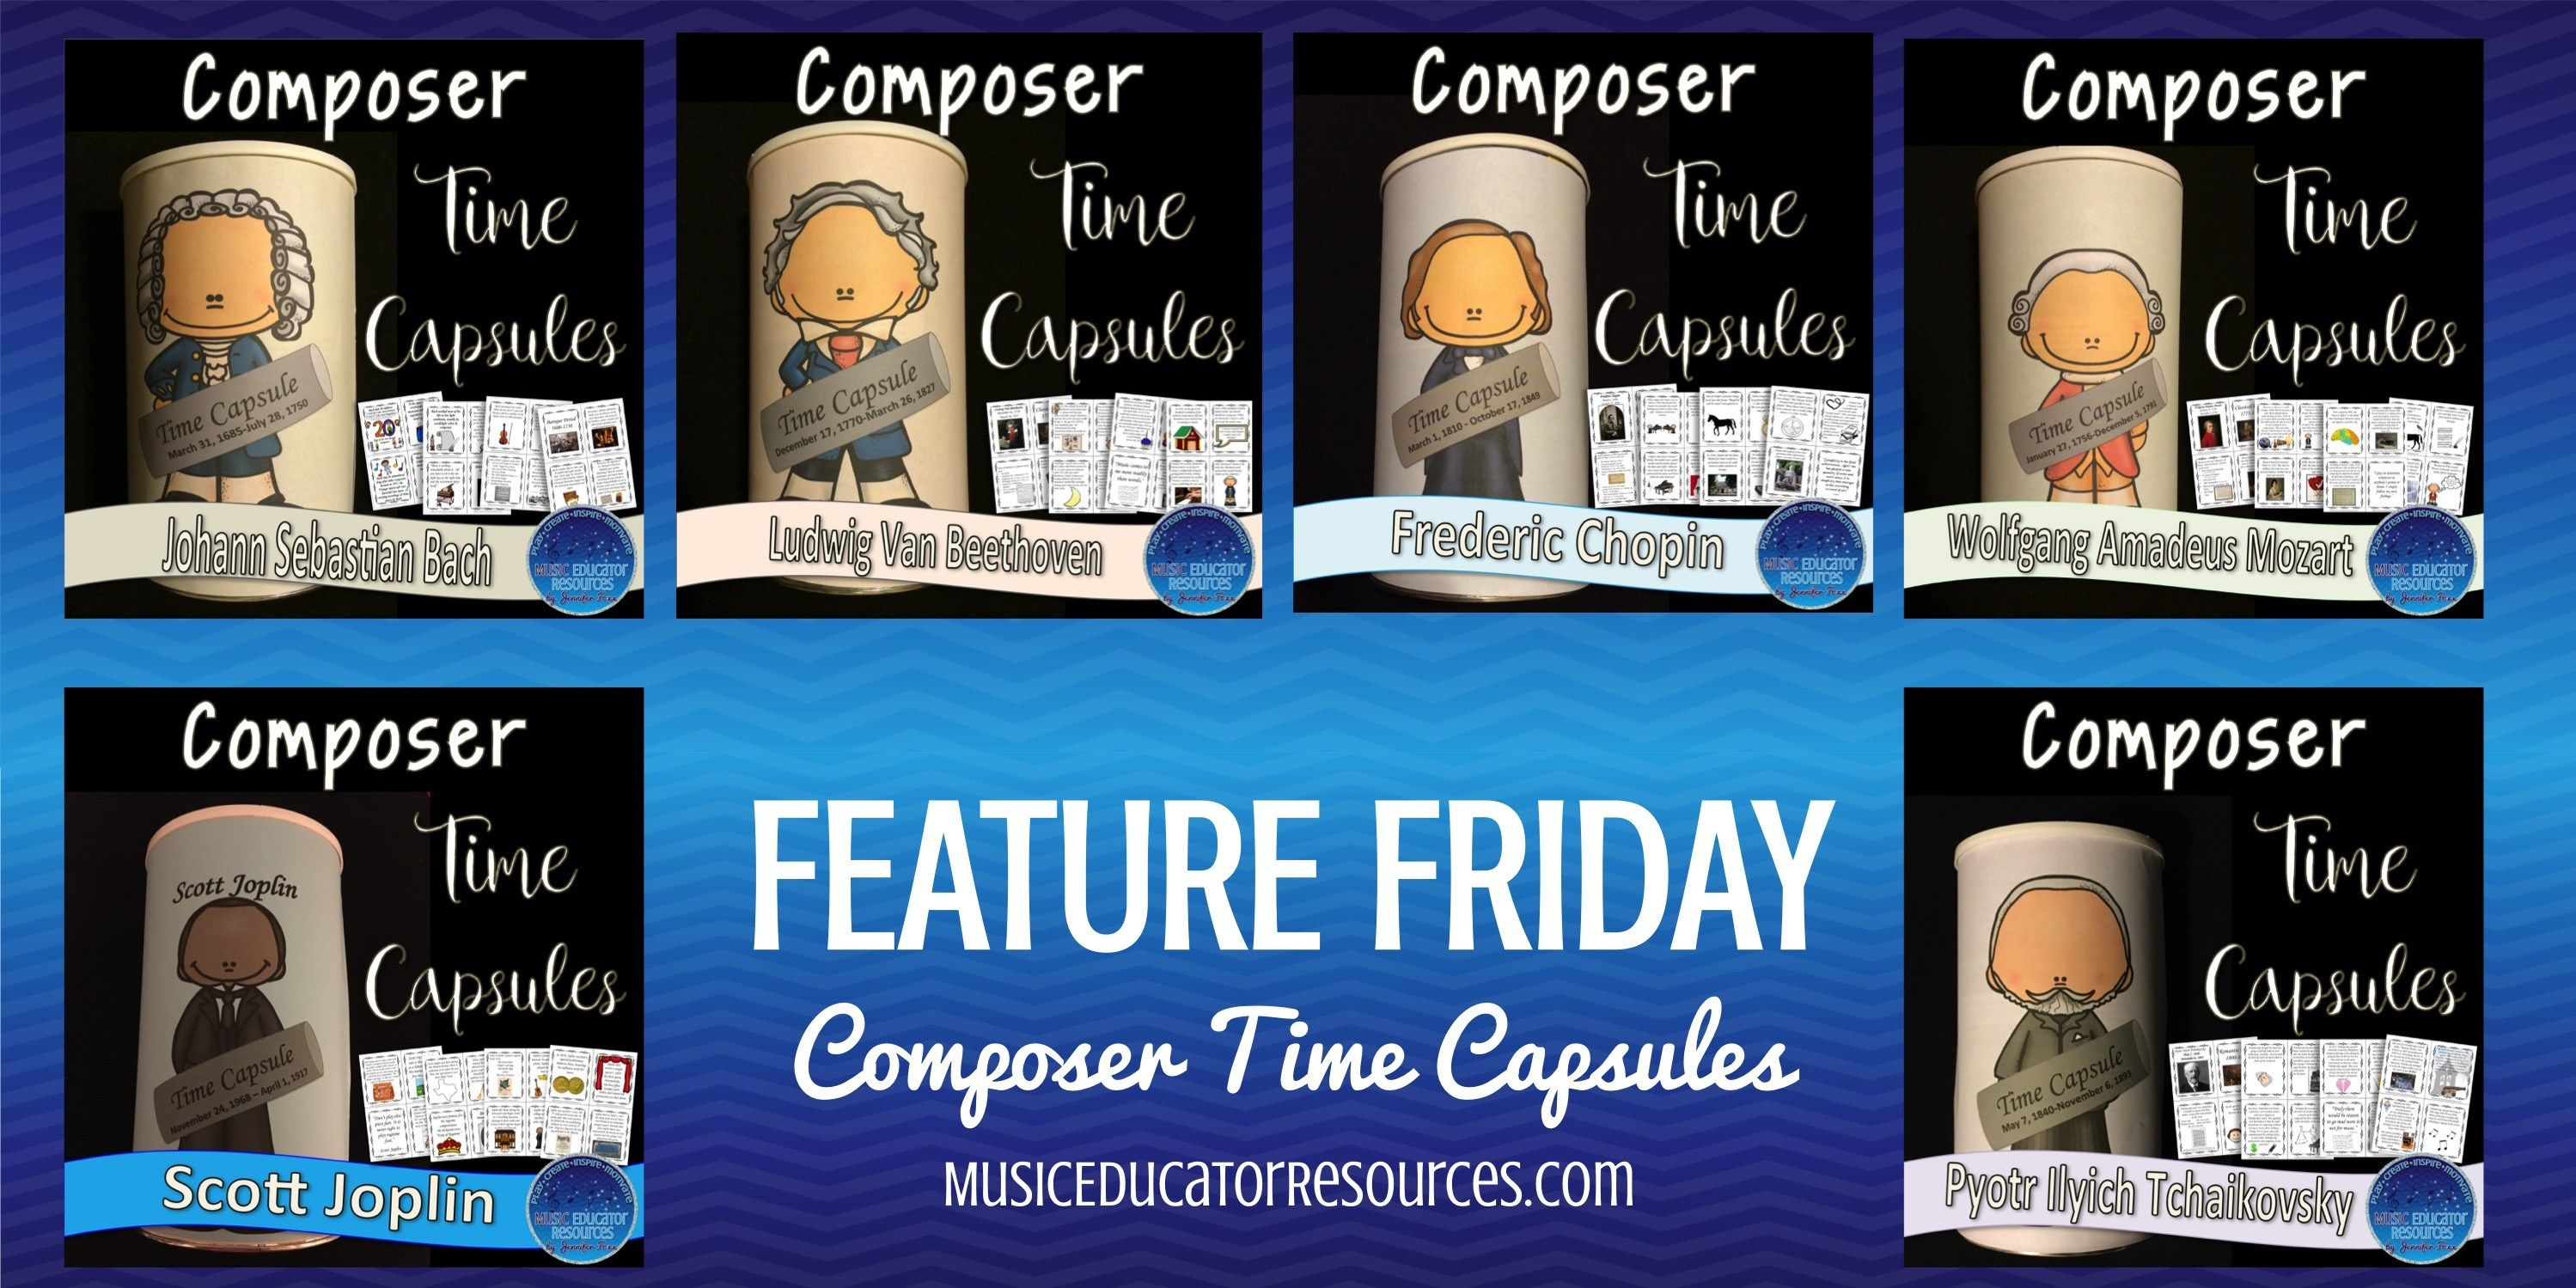 Composer Time Capsules An Engaging Way To Learn About